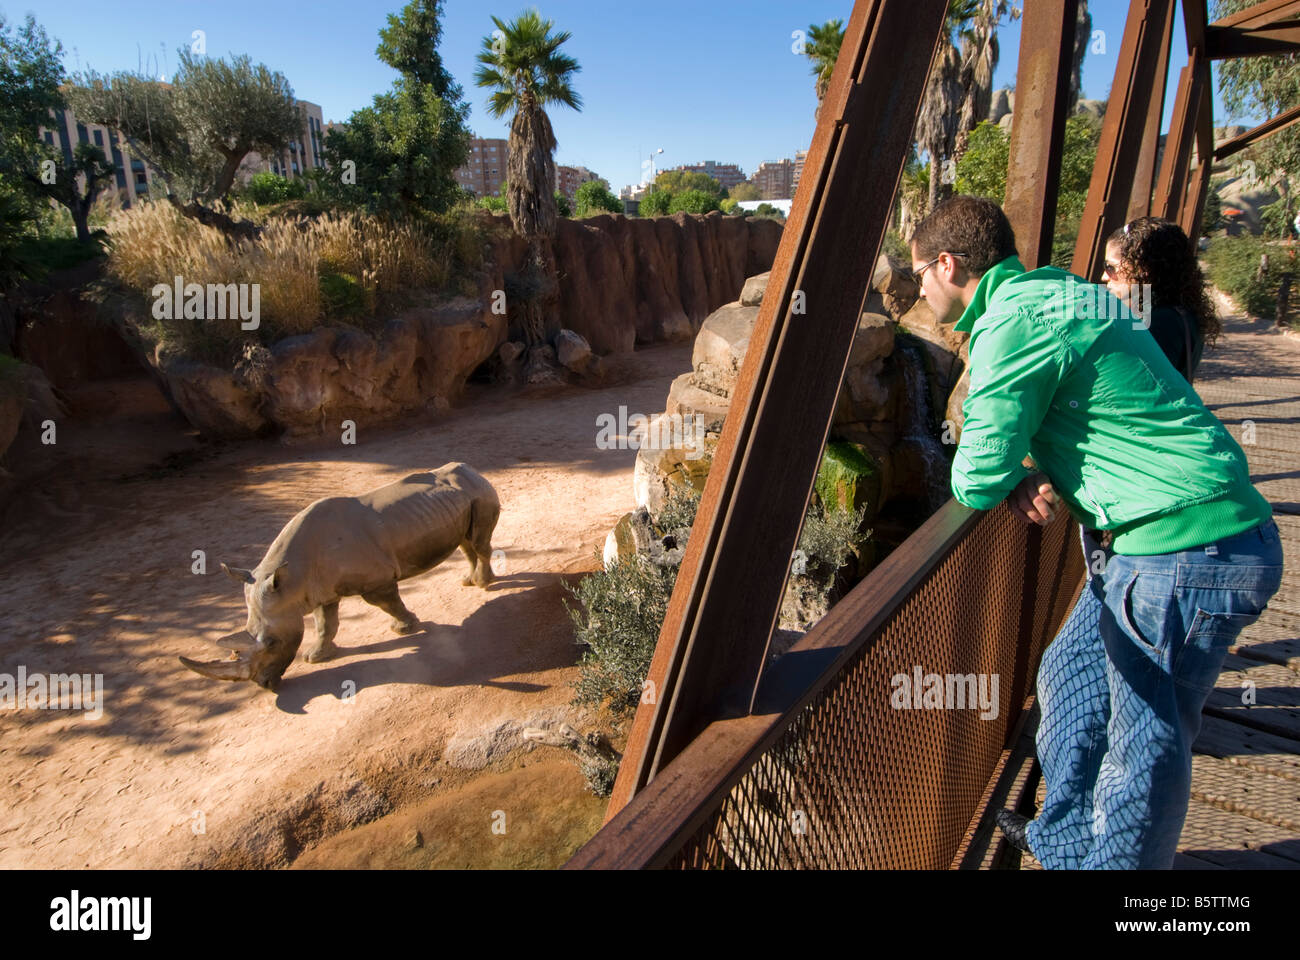 People looking at rhinoceros in enclosure from iron bridge platform in the Biopark zoo which opened in 2008 Valencia - Stock Image